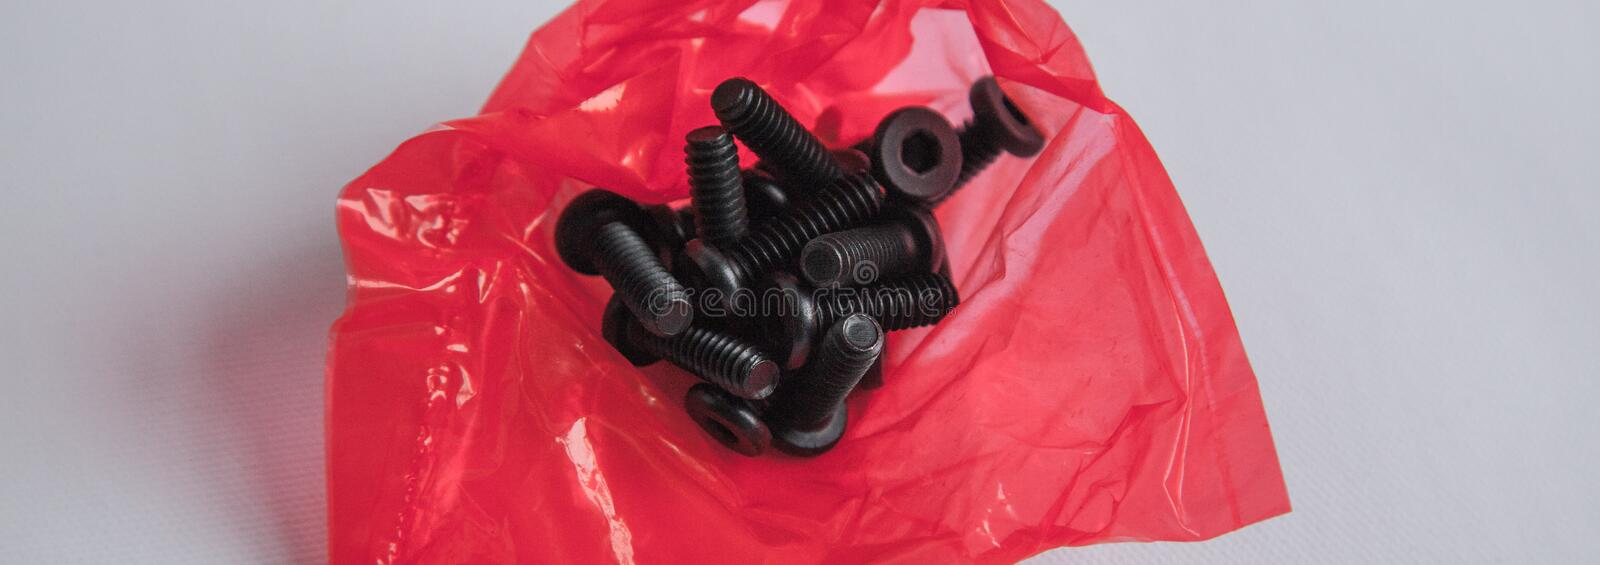 The bunch of Bolts in the red plastic bag royalty free stock image